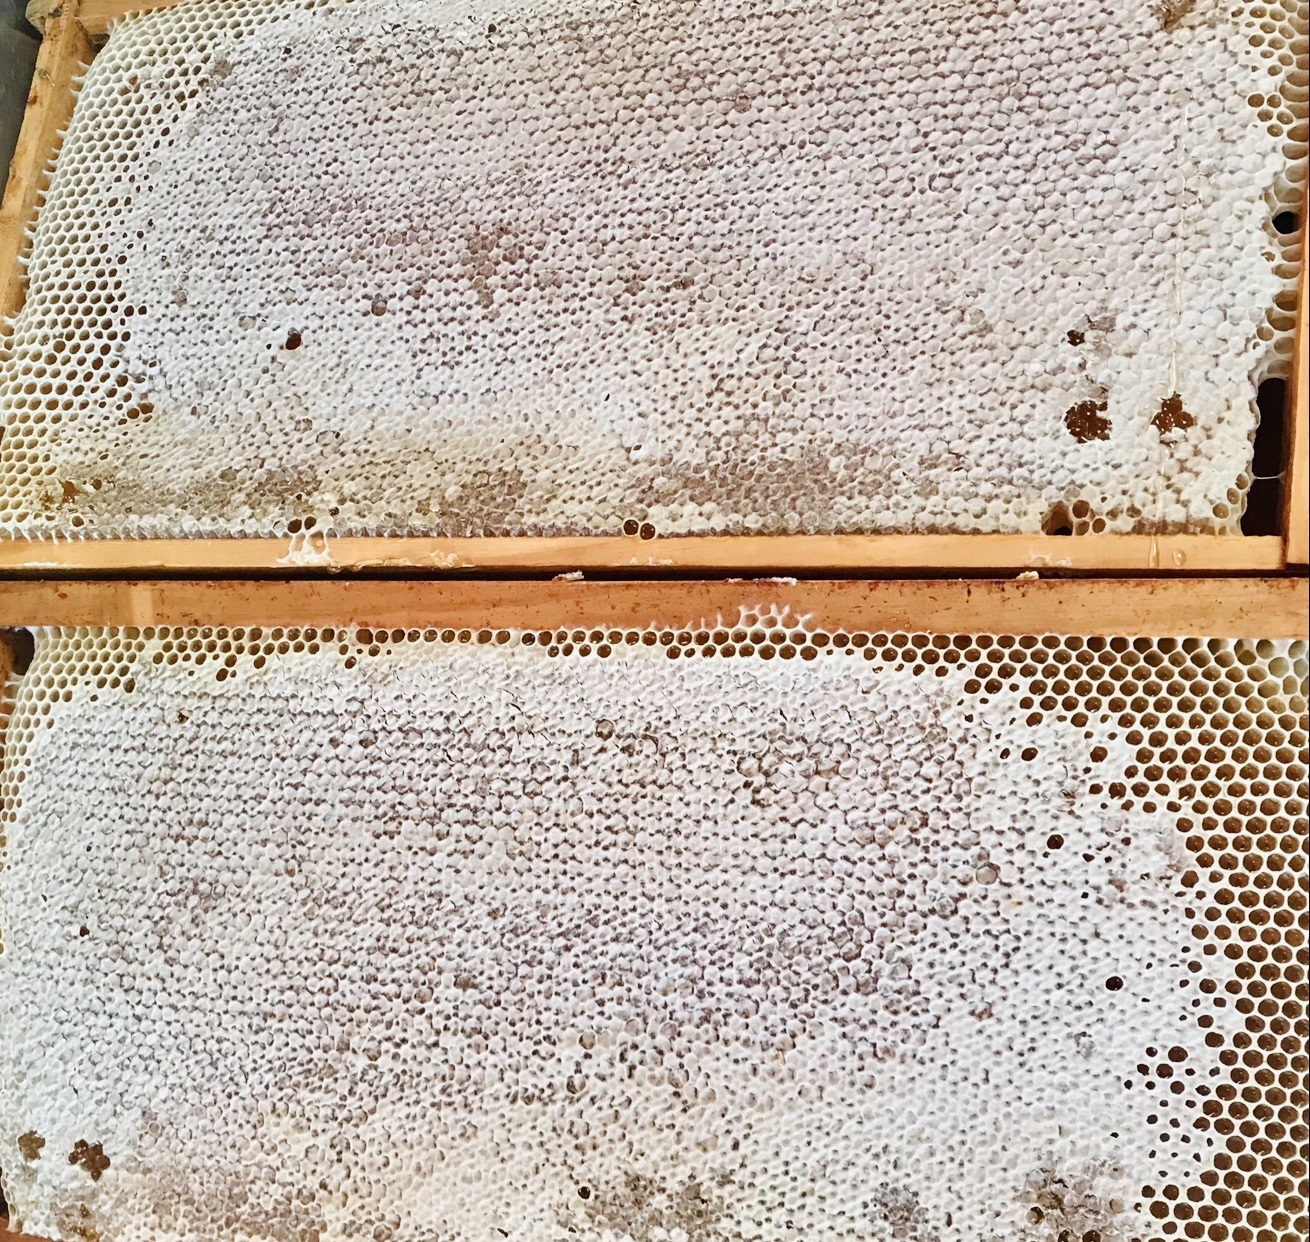 Name: Aydin. Prize: Shortlist. There are two honey frames in rectangle shapes. Each rectangle is 50 cm long and 25cm high and weighs 4 kilograms.  The bees fill up the hexagon shapes inside with honey. The hexagon has 6 sides and it is a repeated pattern with no gaps.